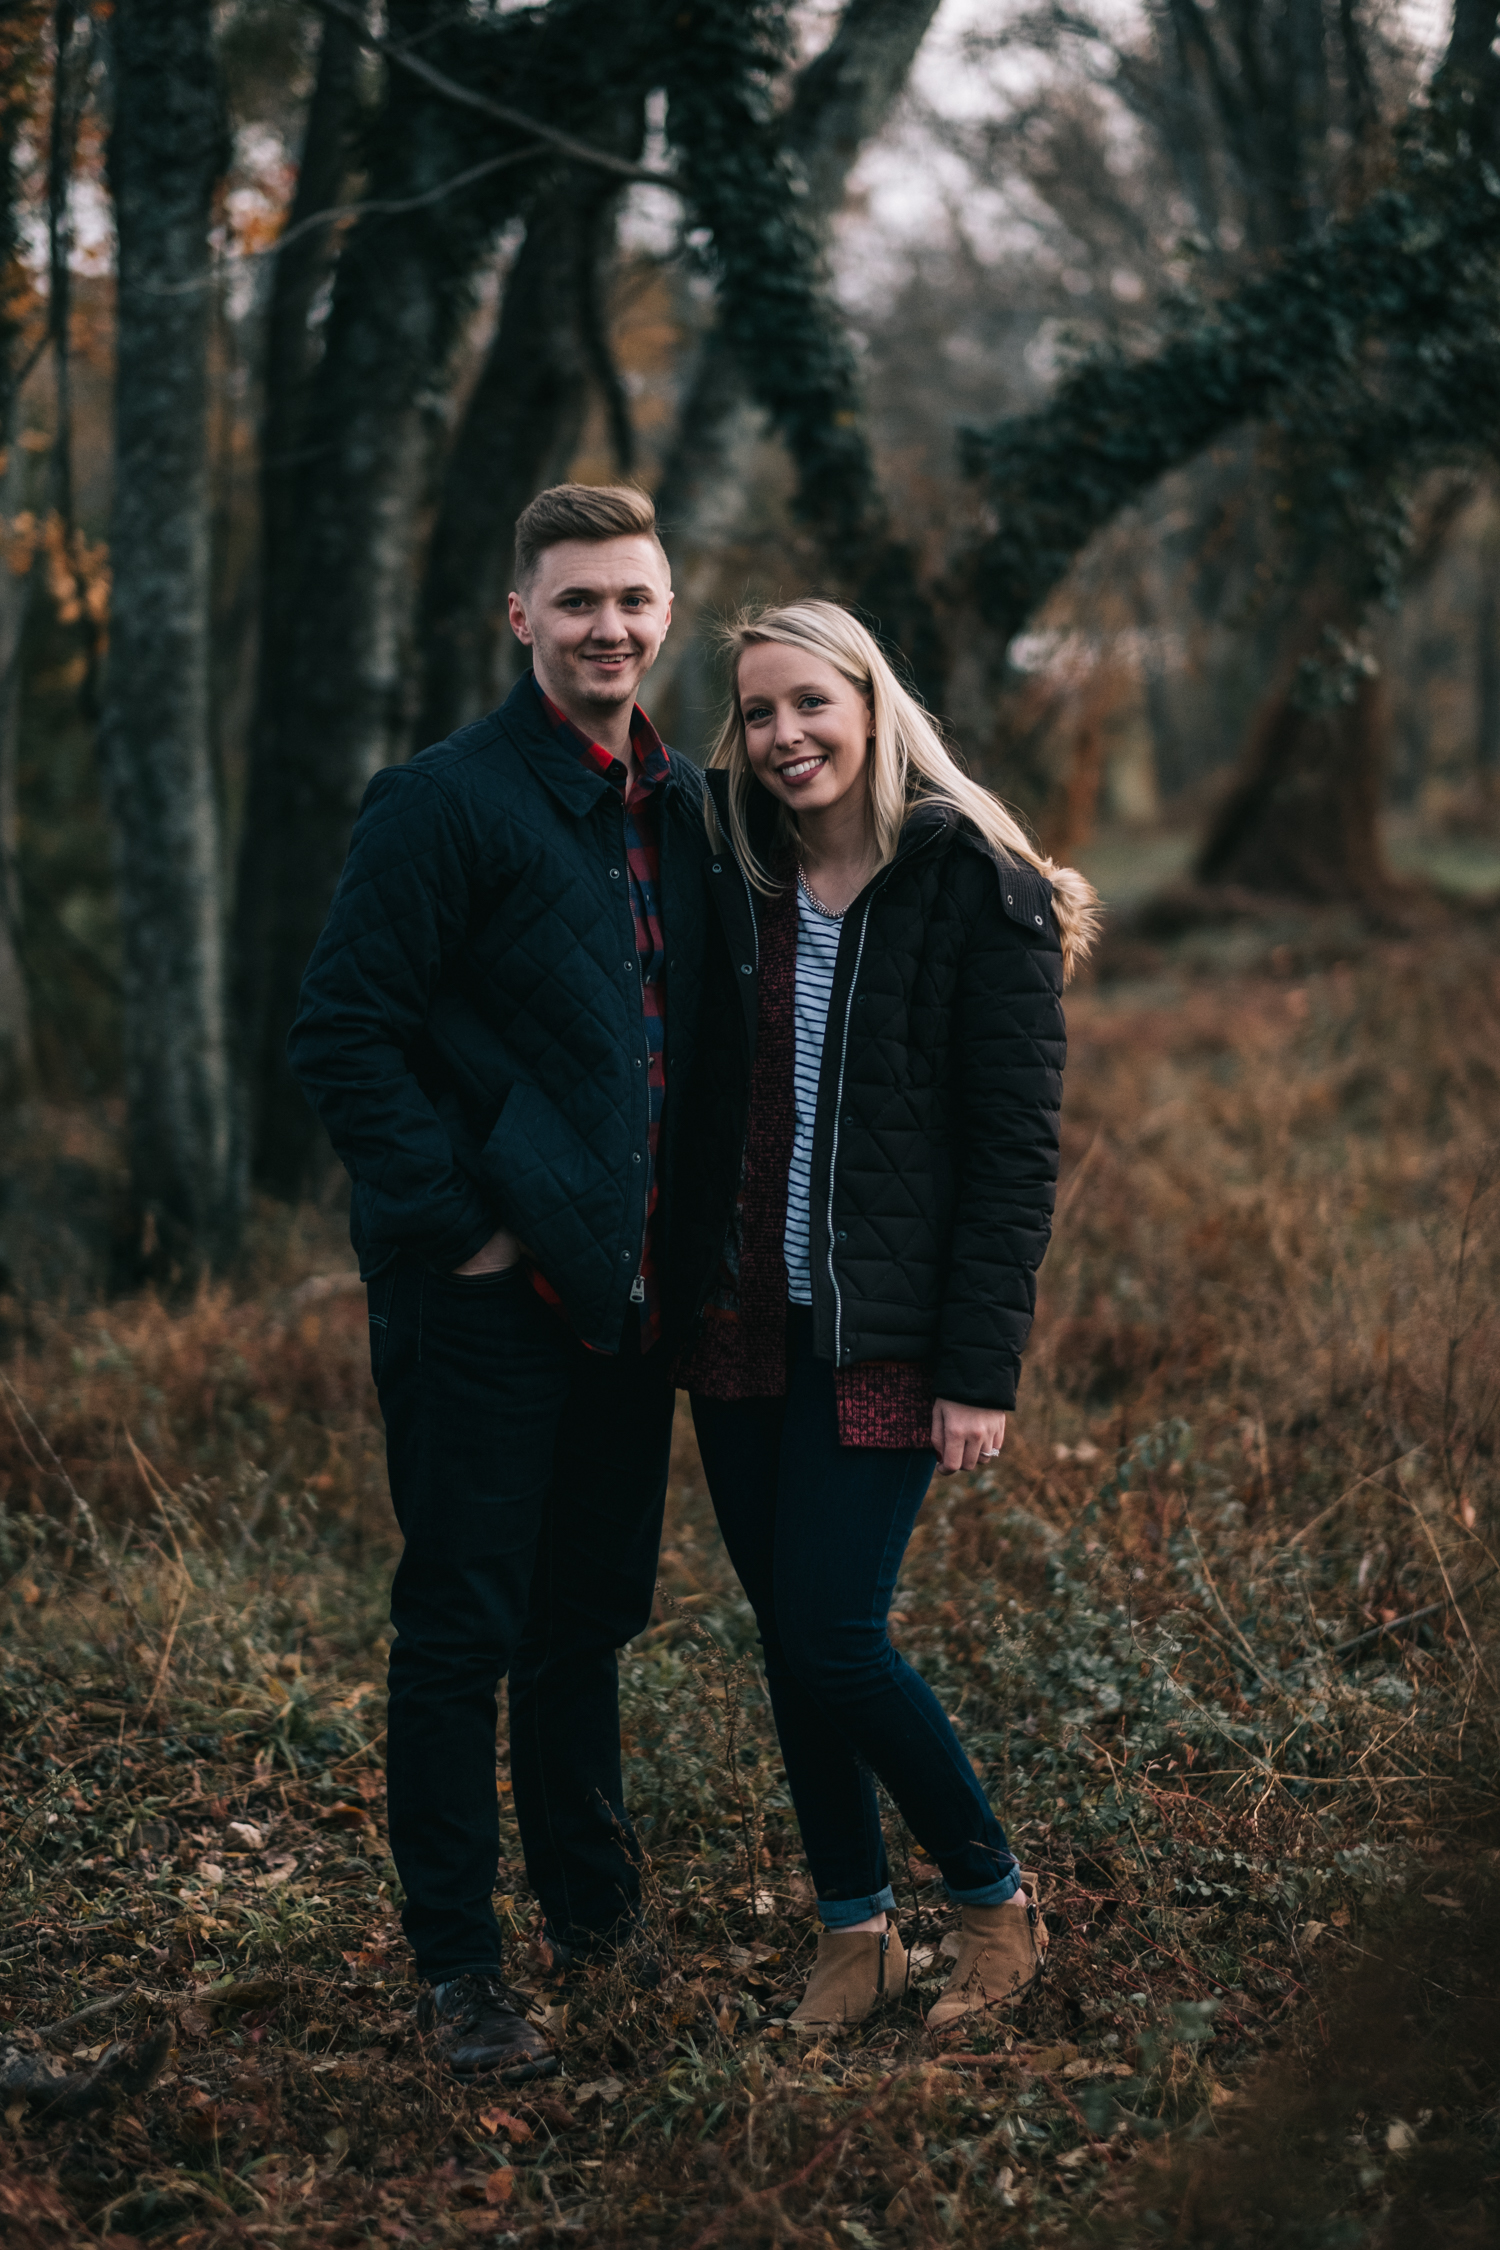 morven-park-engagement-session-24.jpg